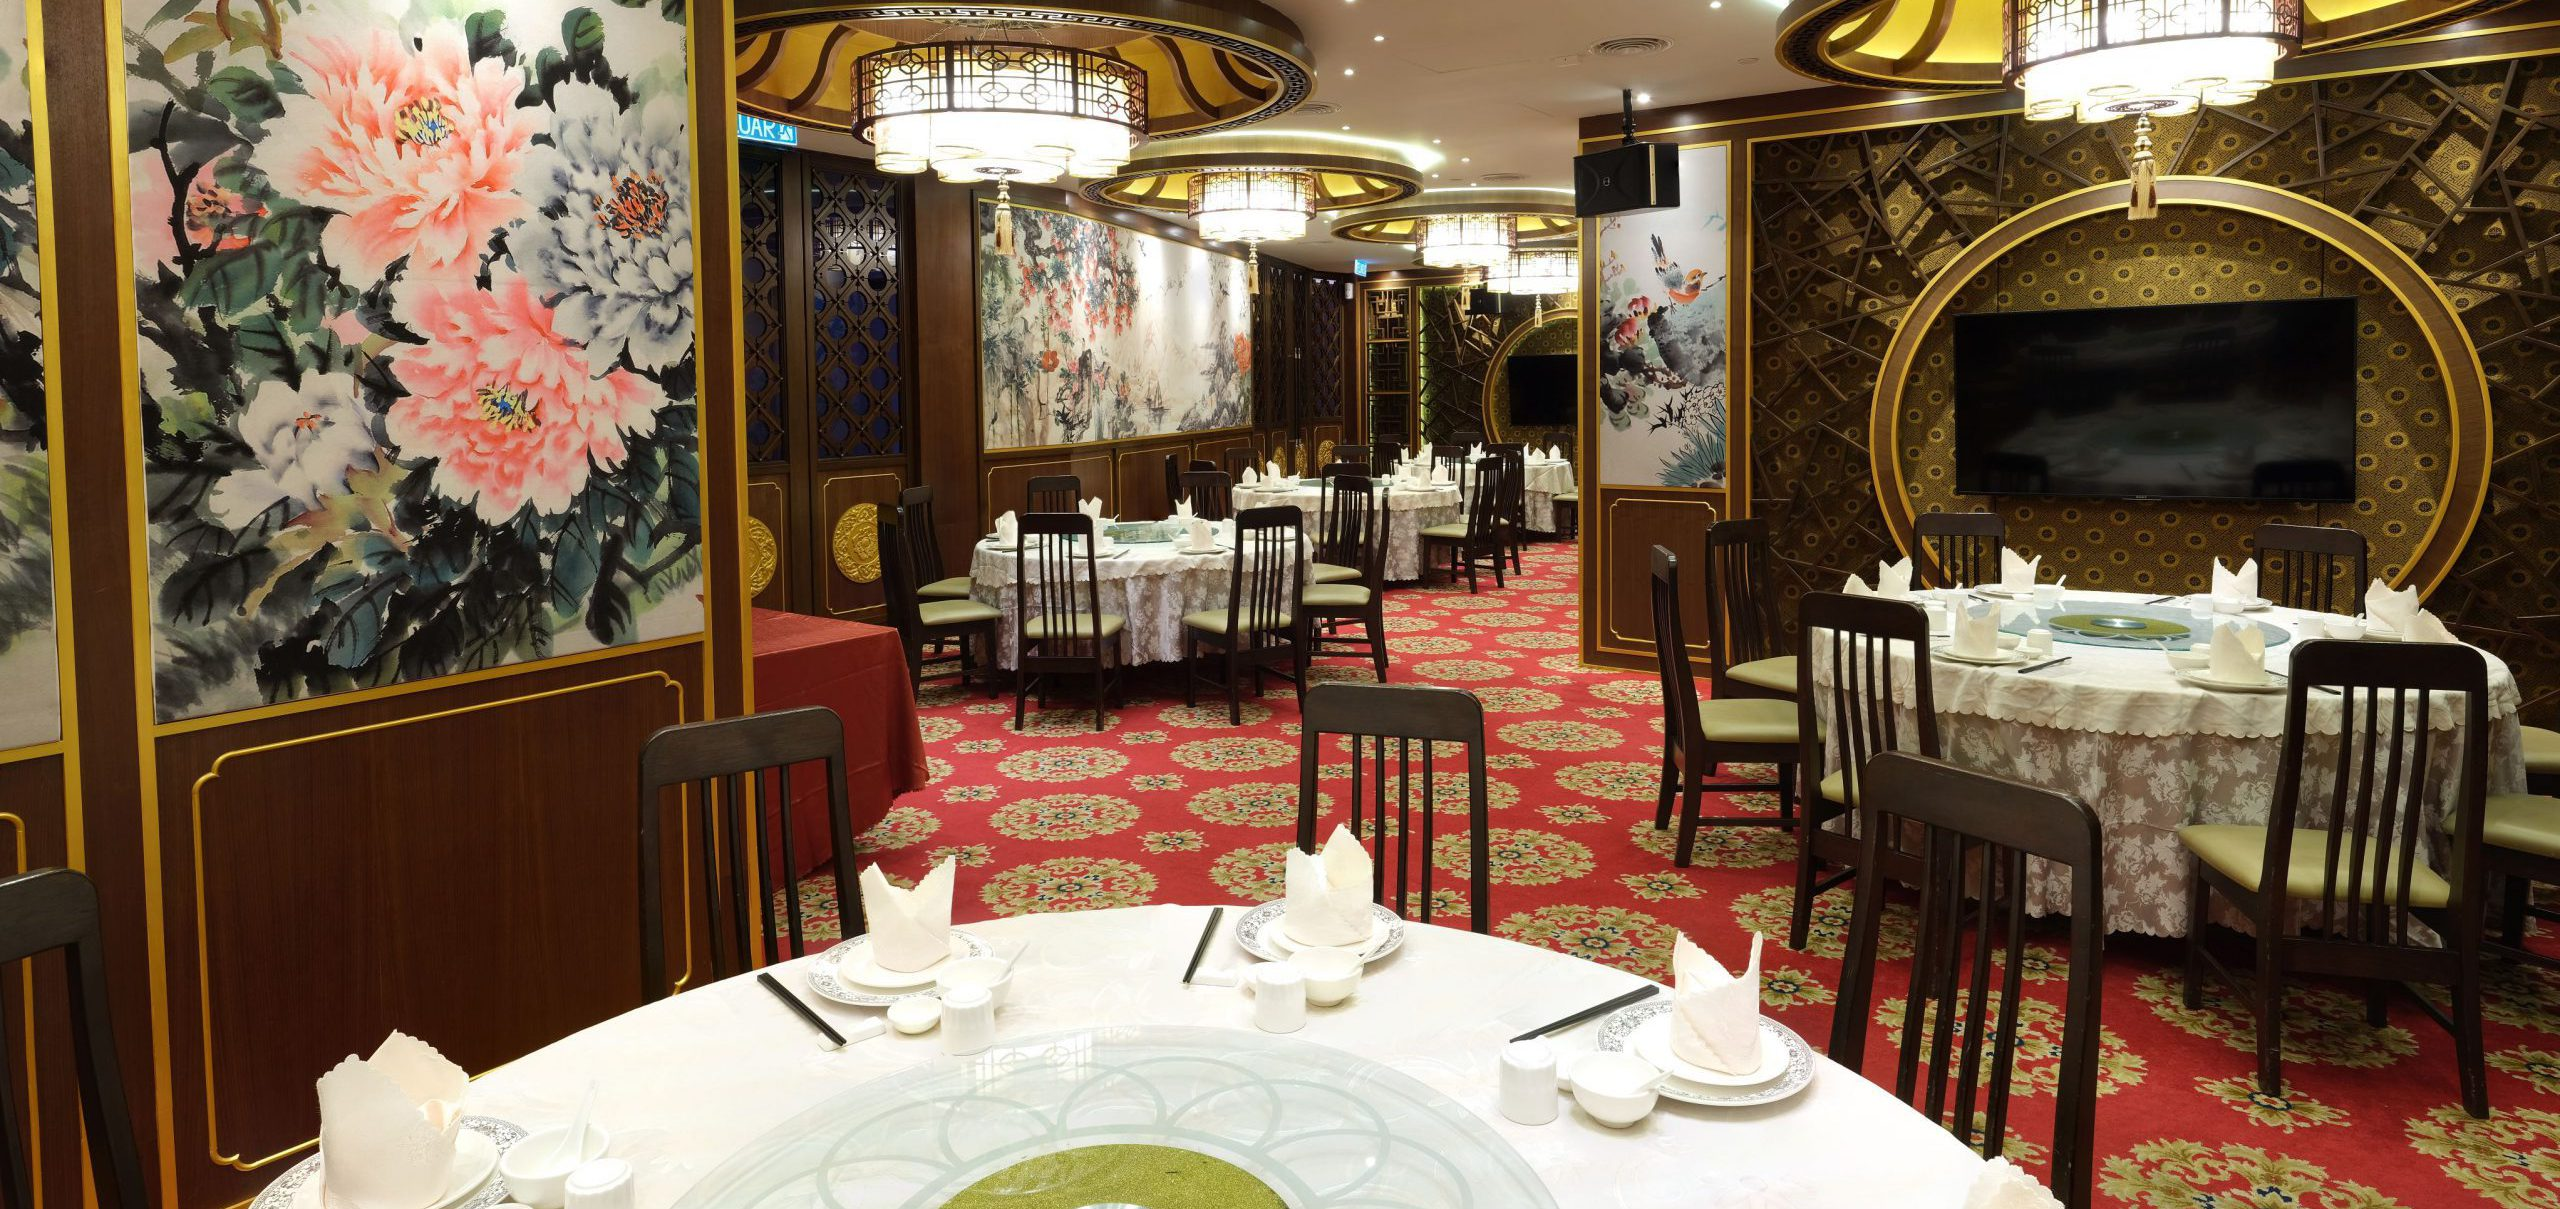 Chinese Restaurant in KL in Private Dining Rooms